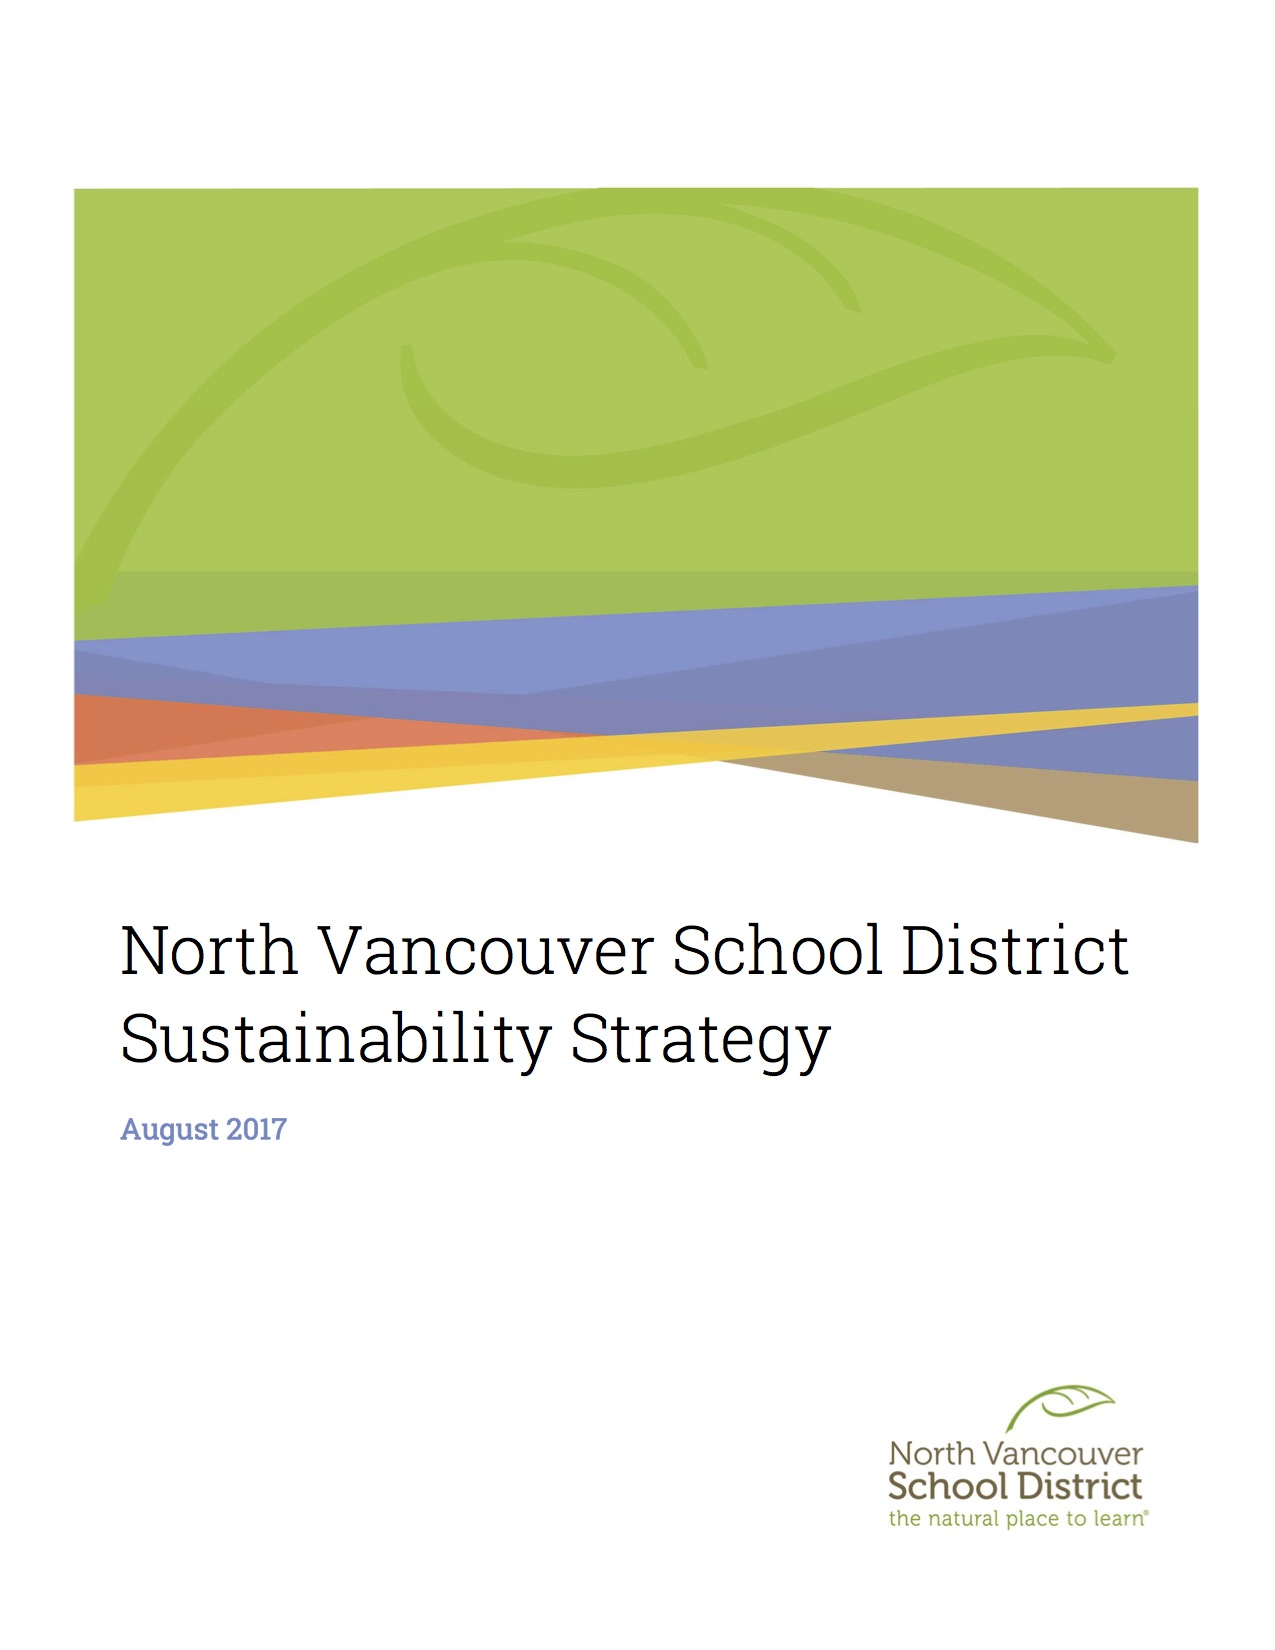 NVSD Sustainability Strategy 2017.jpg